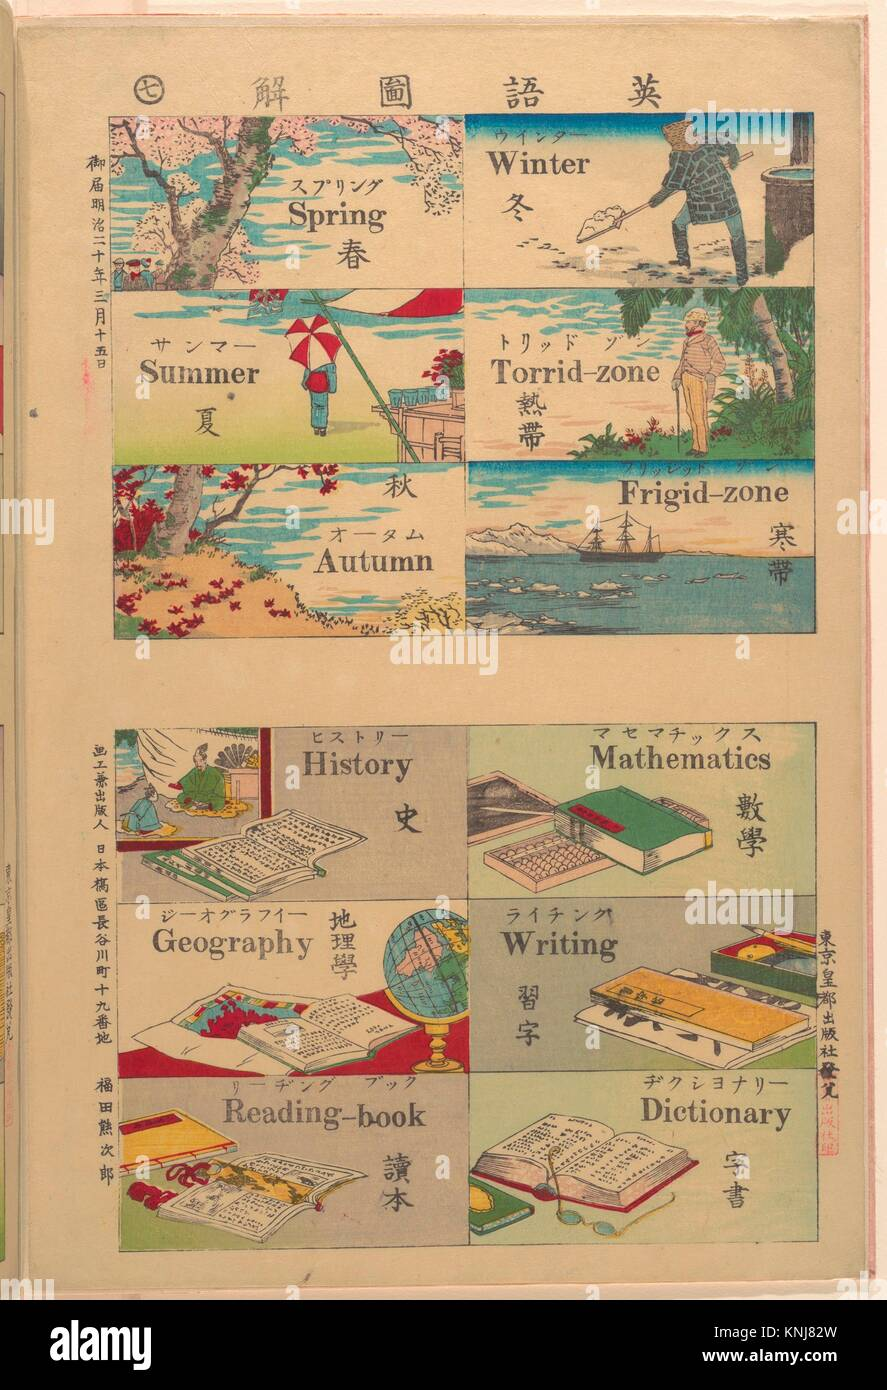 Pictorial Dictionary. Artist: Unidentified Artist; Period: Meiji period (1868-1912); Date: 1887; Culture: Japan; - Stock Image